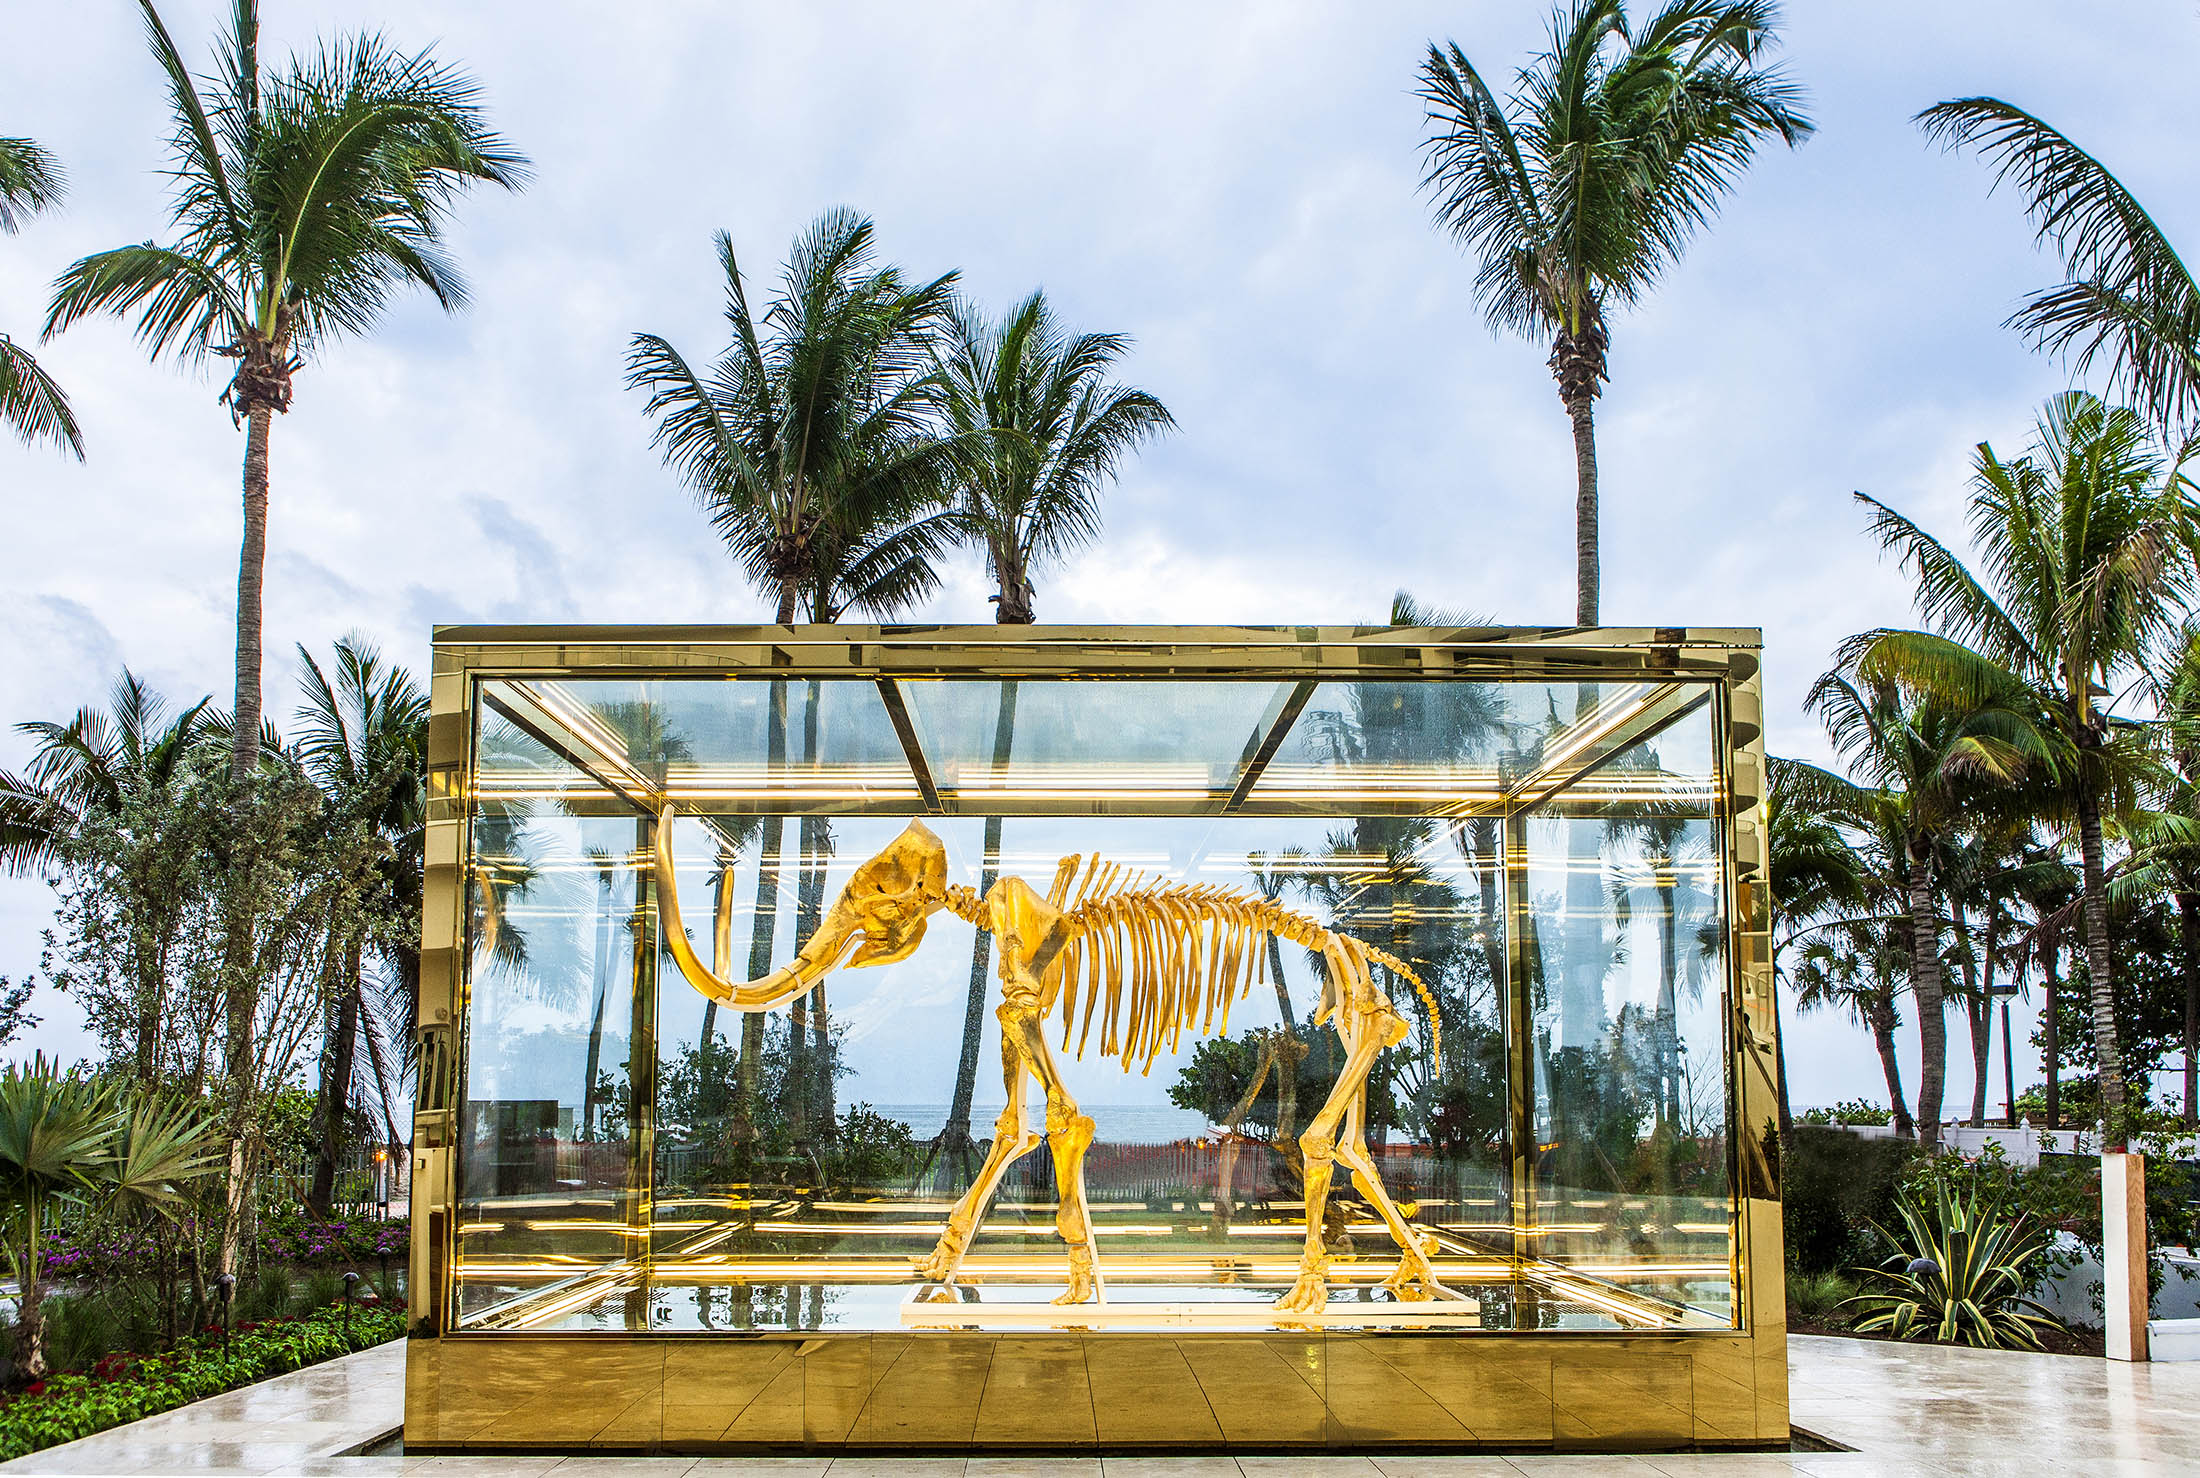 mammoth skeleton in large glass case